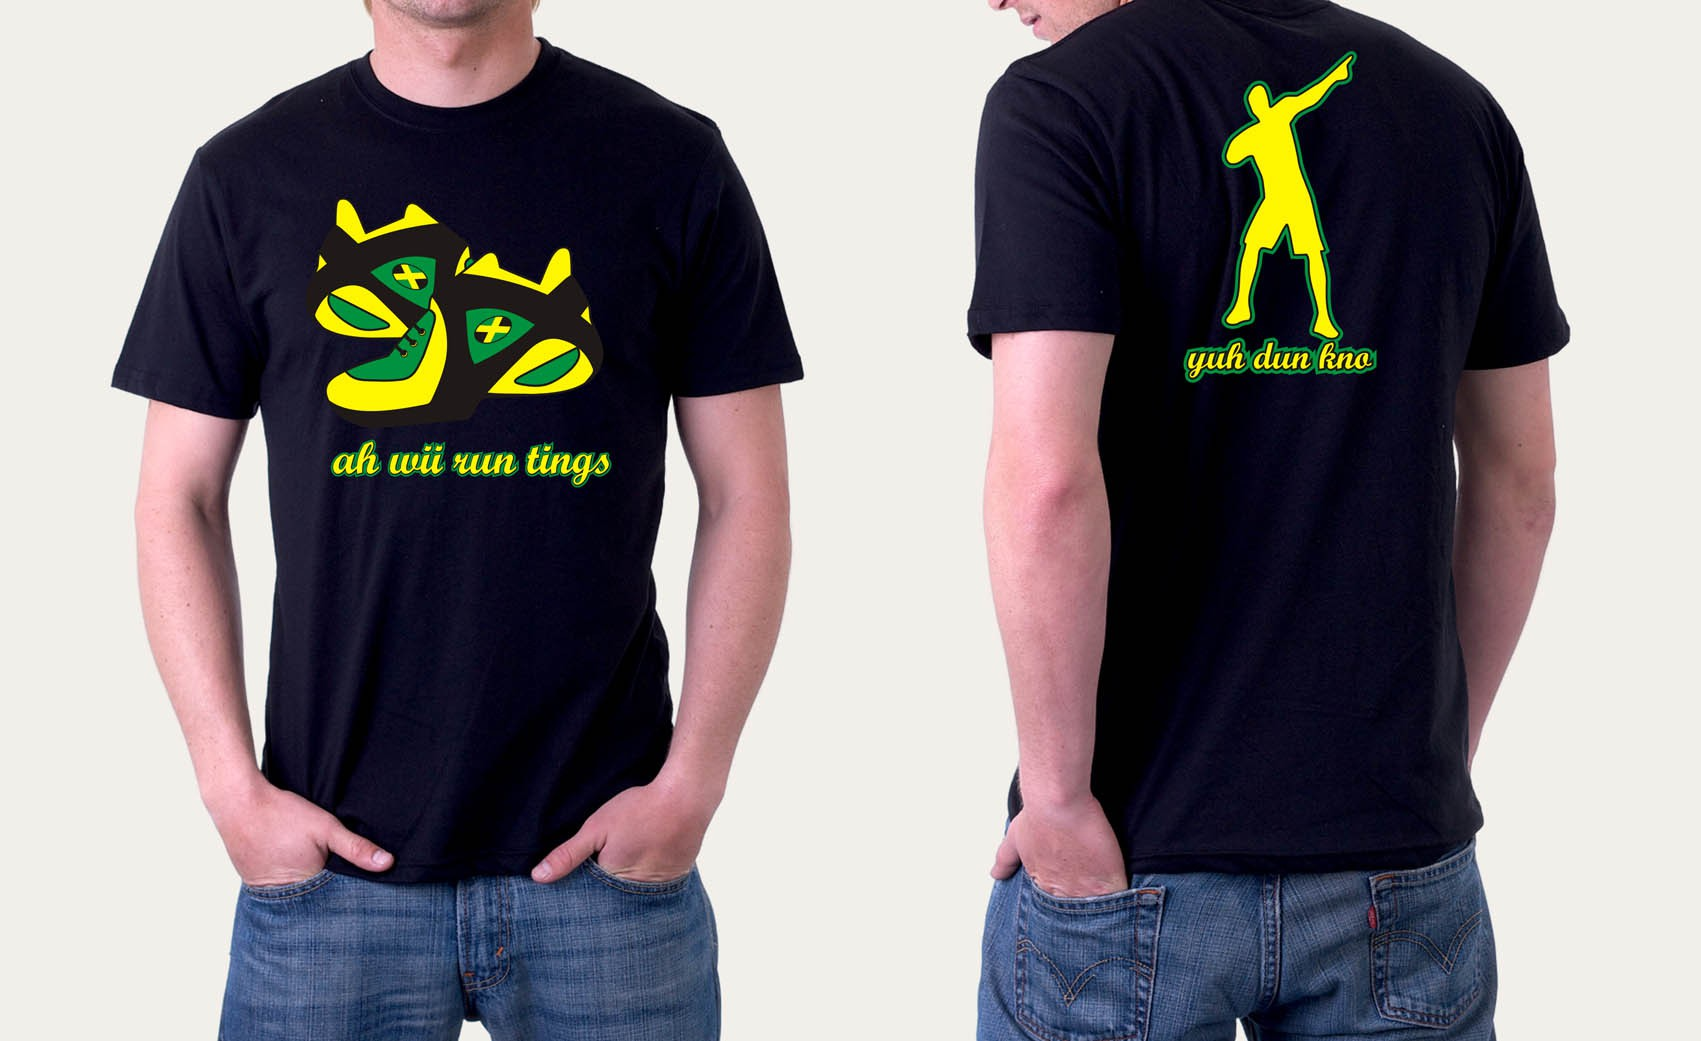 Help ahwiiruntings.co.uk with a new t-shirt design